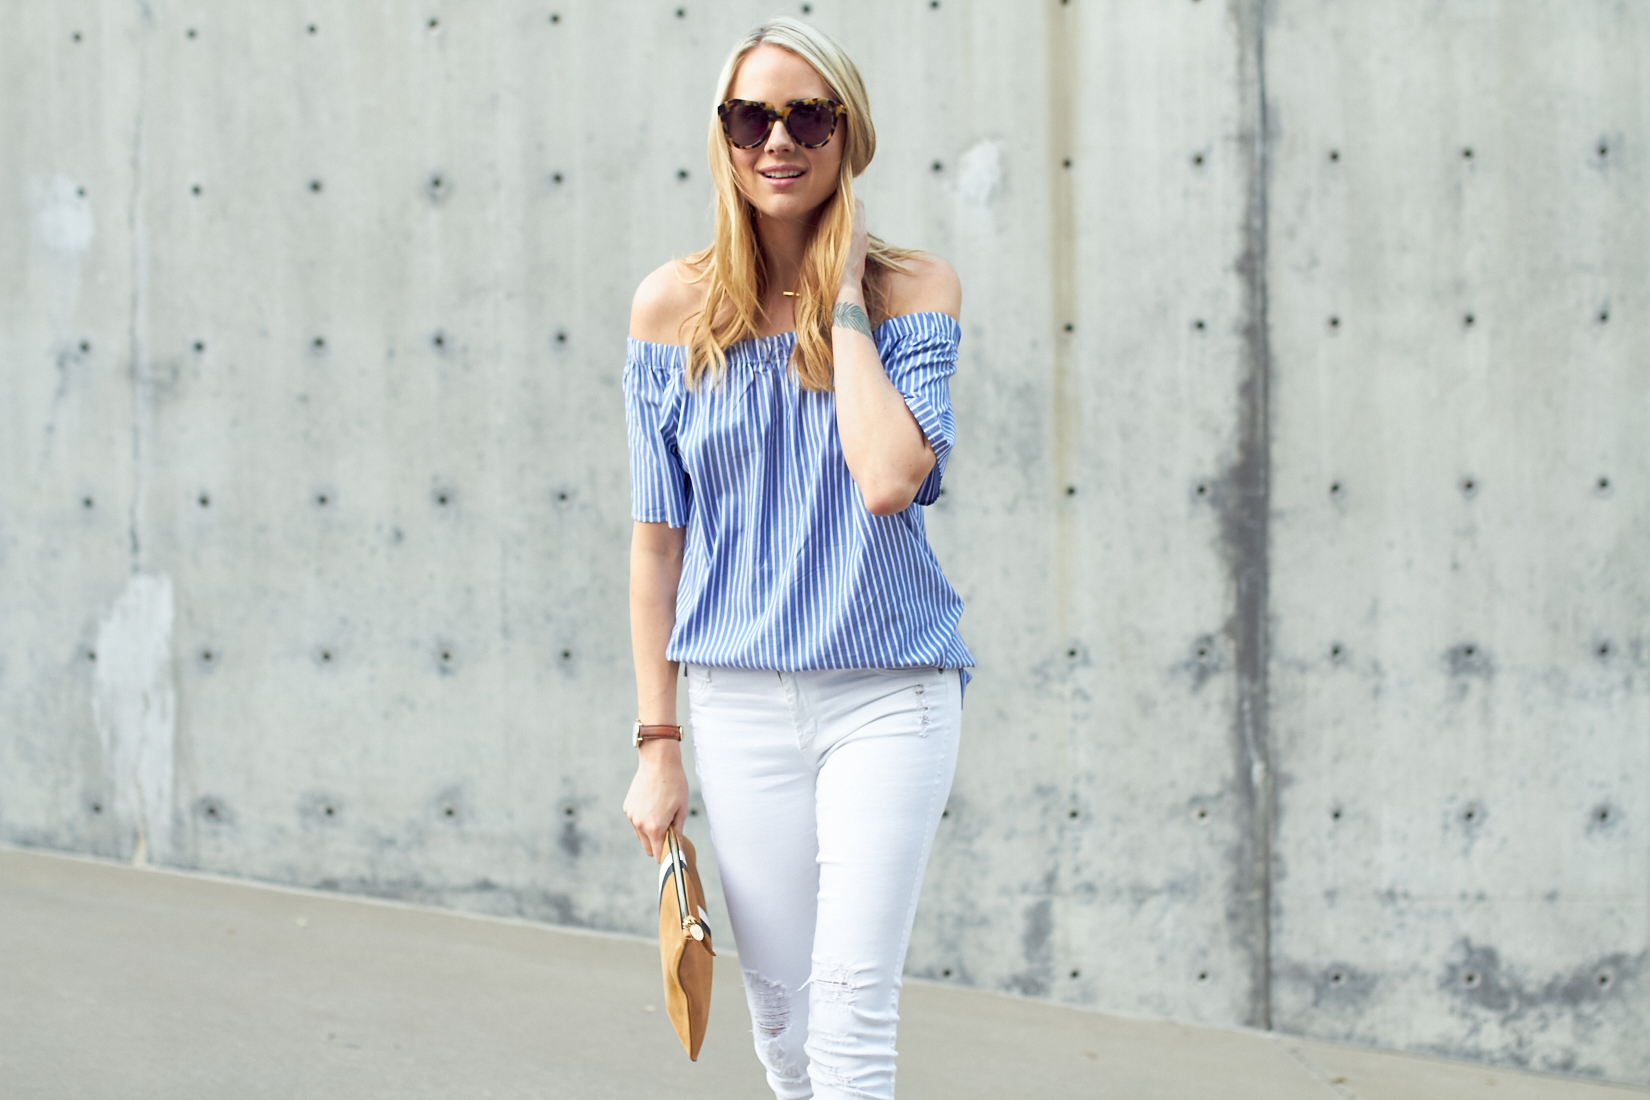 fashion-jackson-banana-republic-blue-stripe-off-the-shoulder-top-white-skinny-jeans-karen-walker-number-one-sunglasses-clare-v-clutch